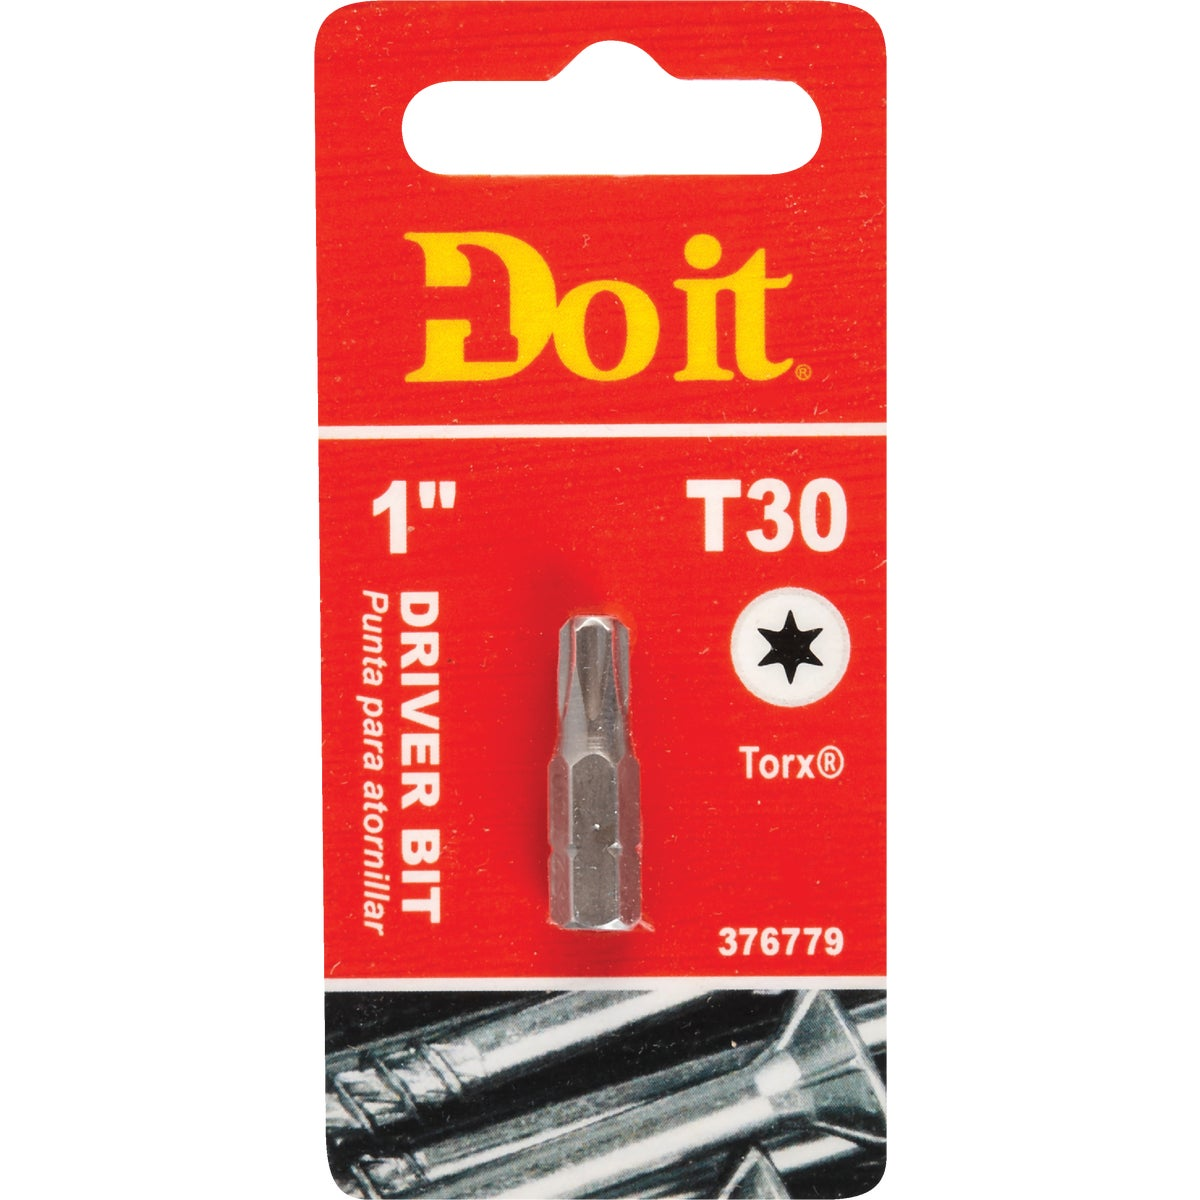 "#30 1"" TORX INSERT BIT - 307751DB by Mibro/gs"